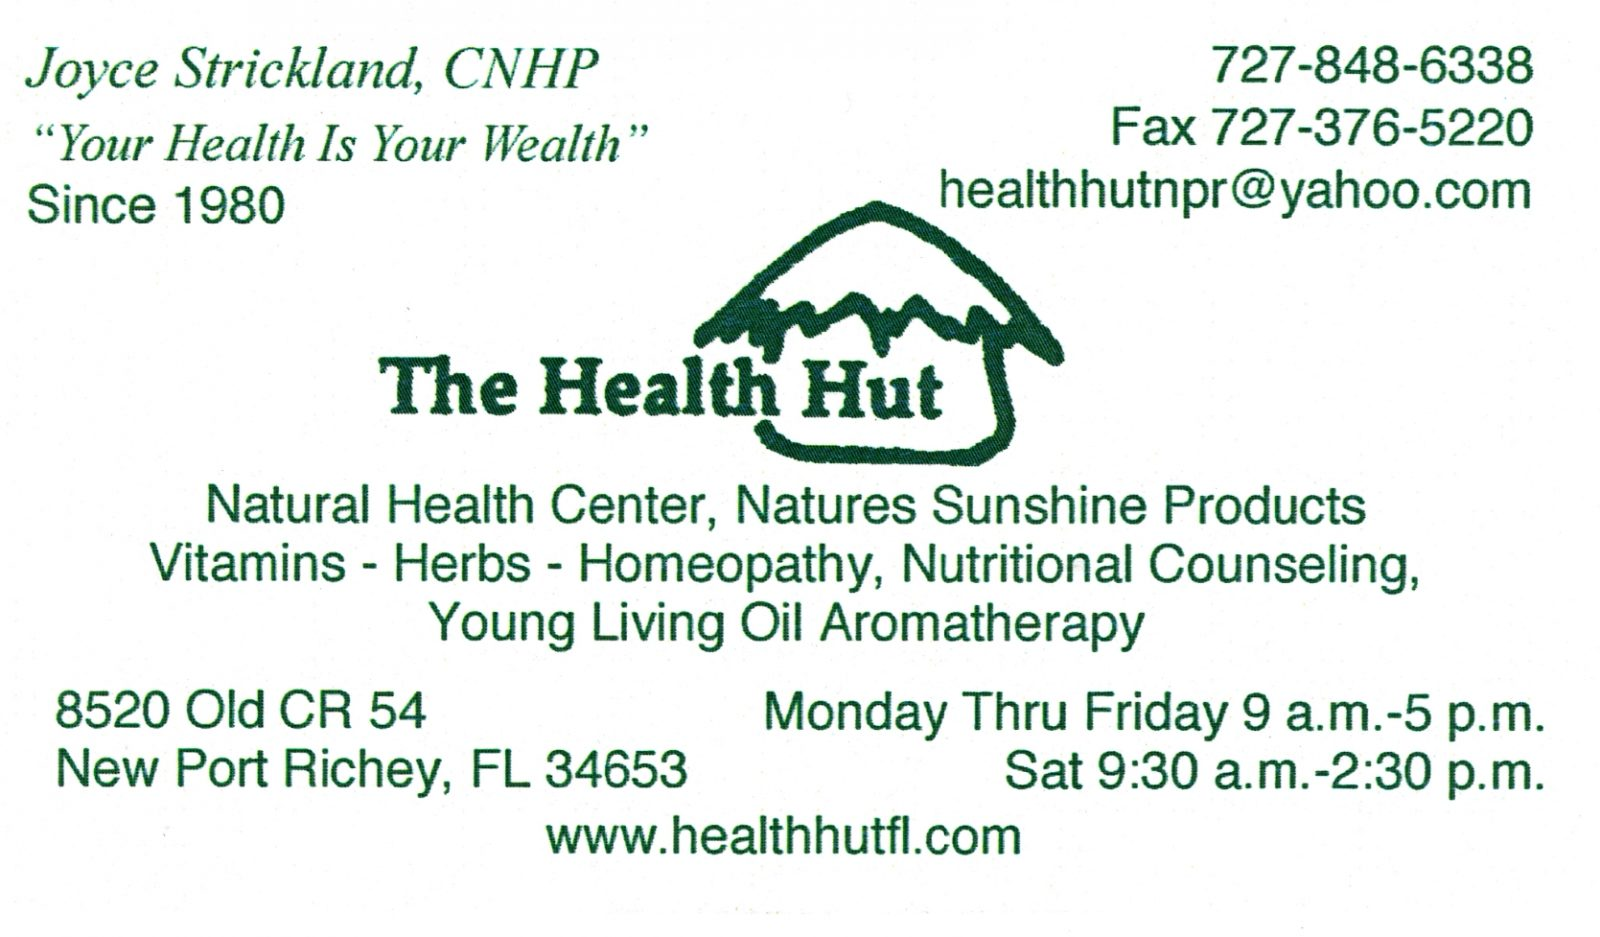 The Health Hut